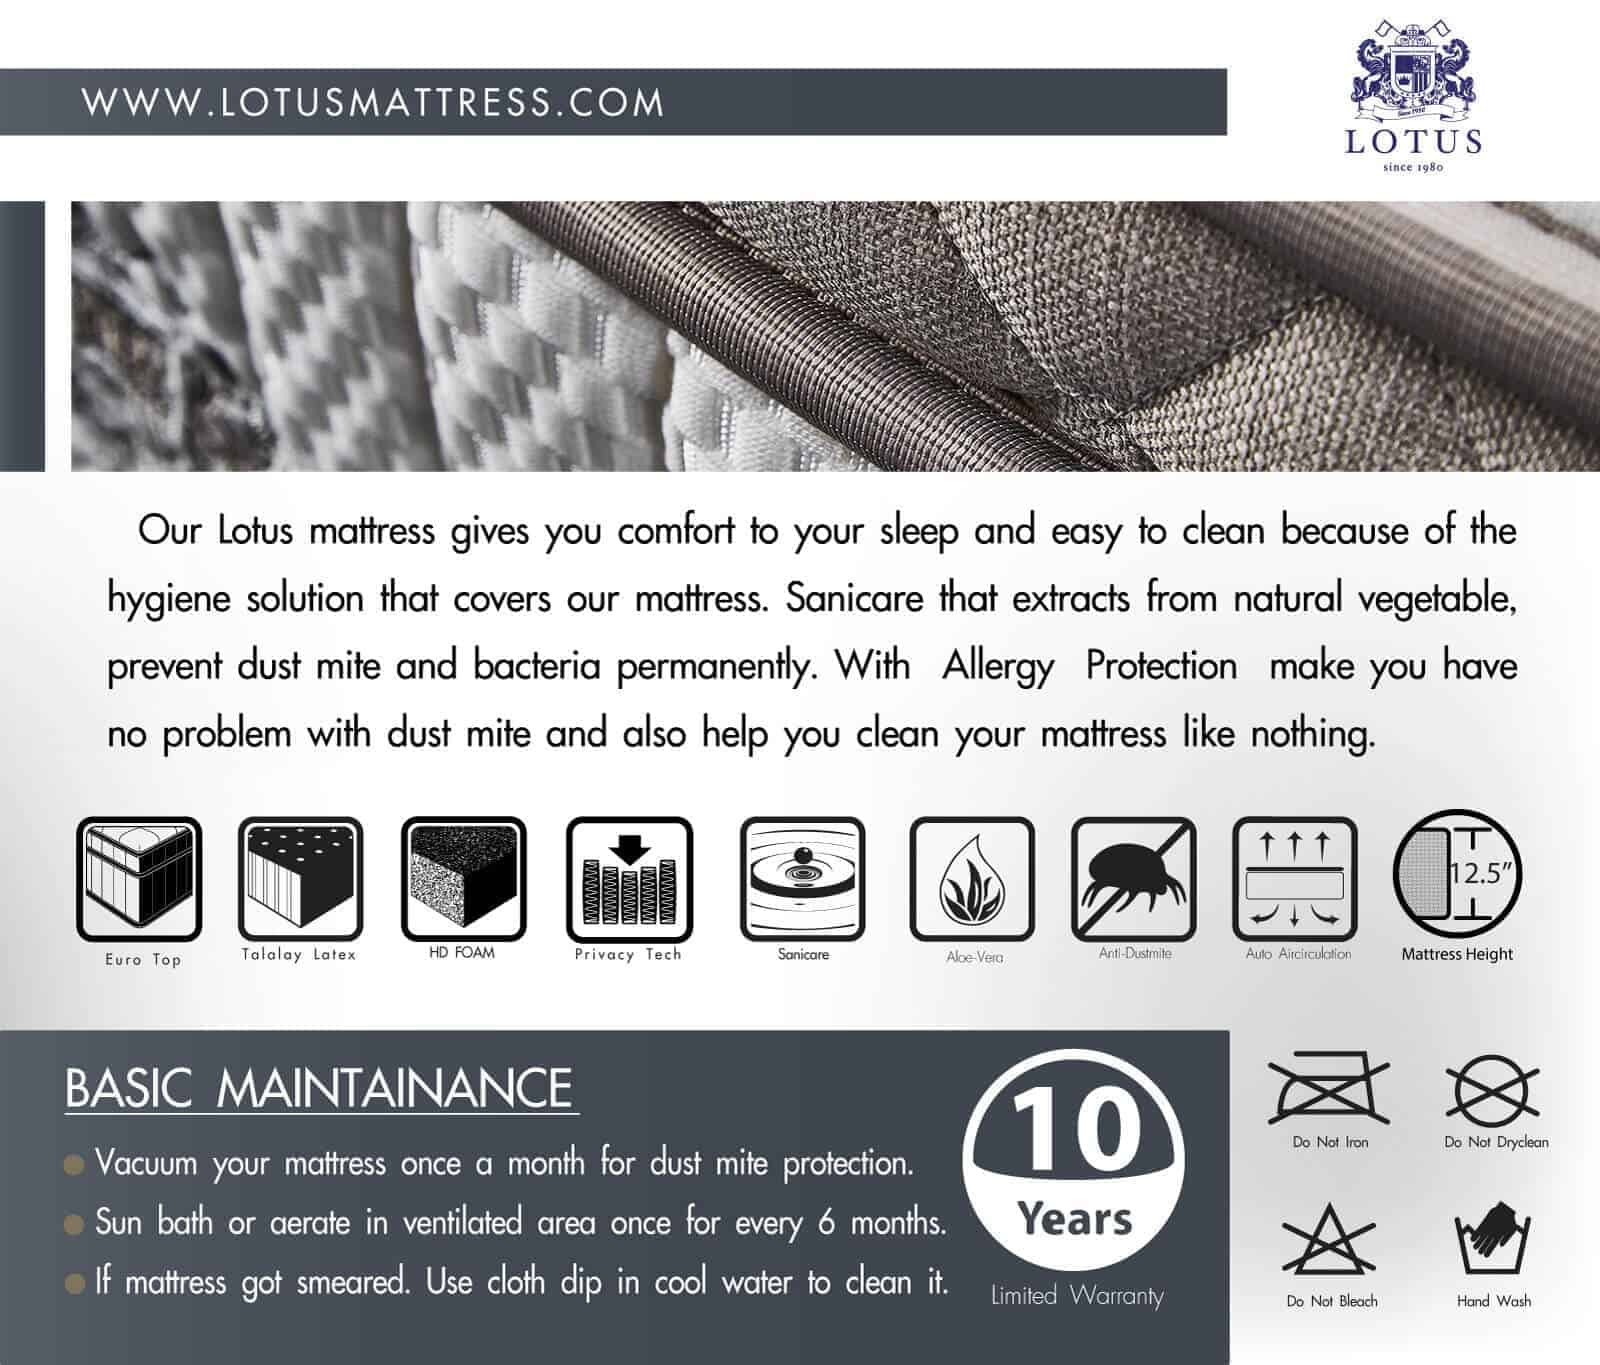 Lotus Mattress | Privacy Tech - SORENTO 18